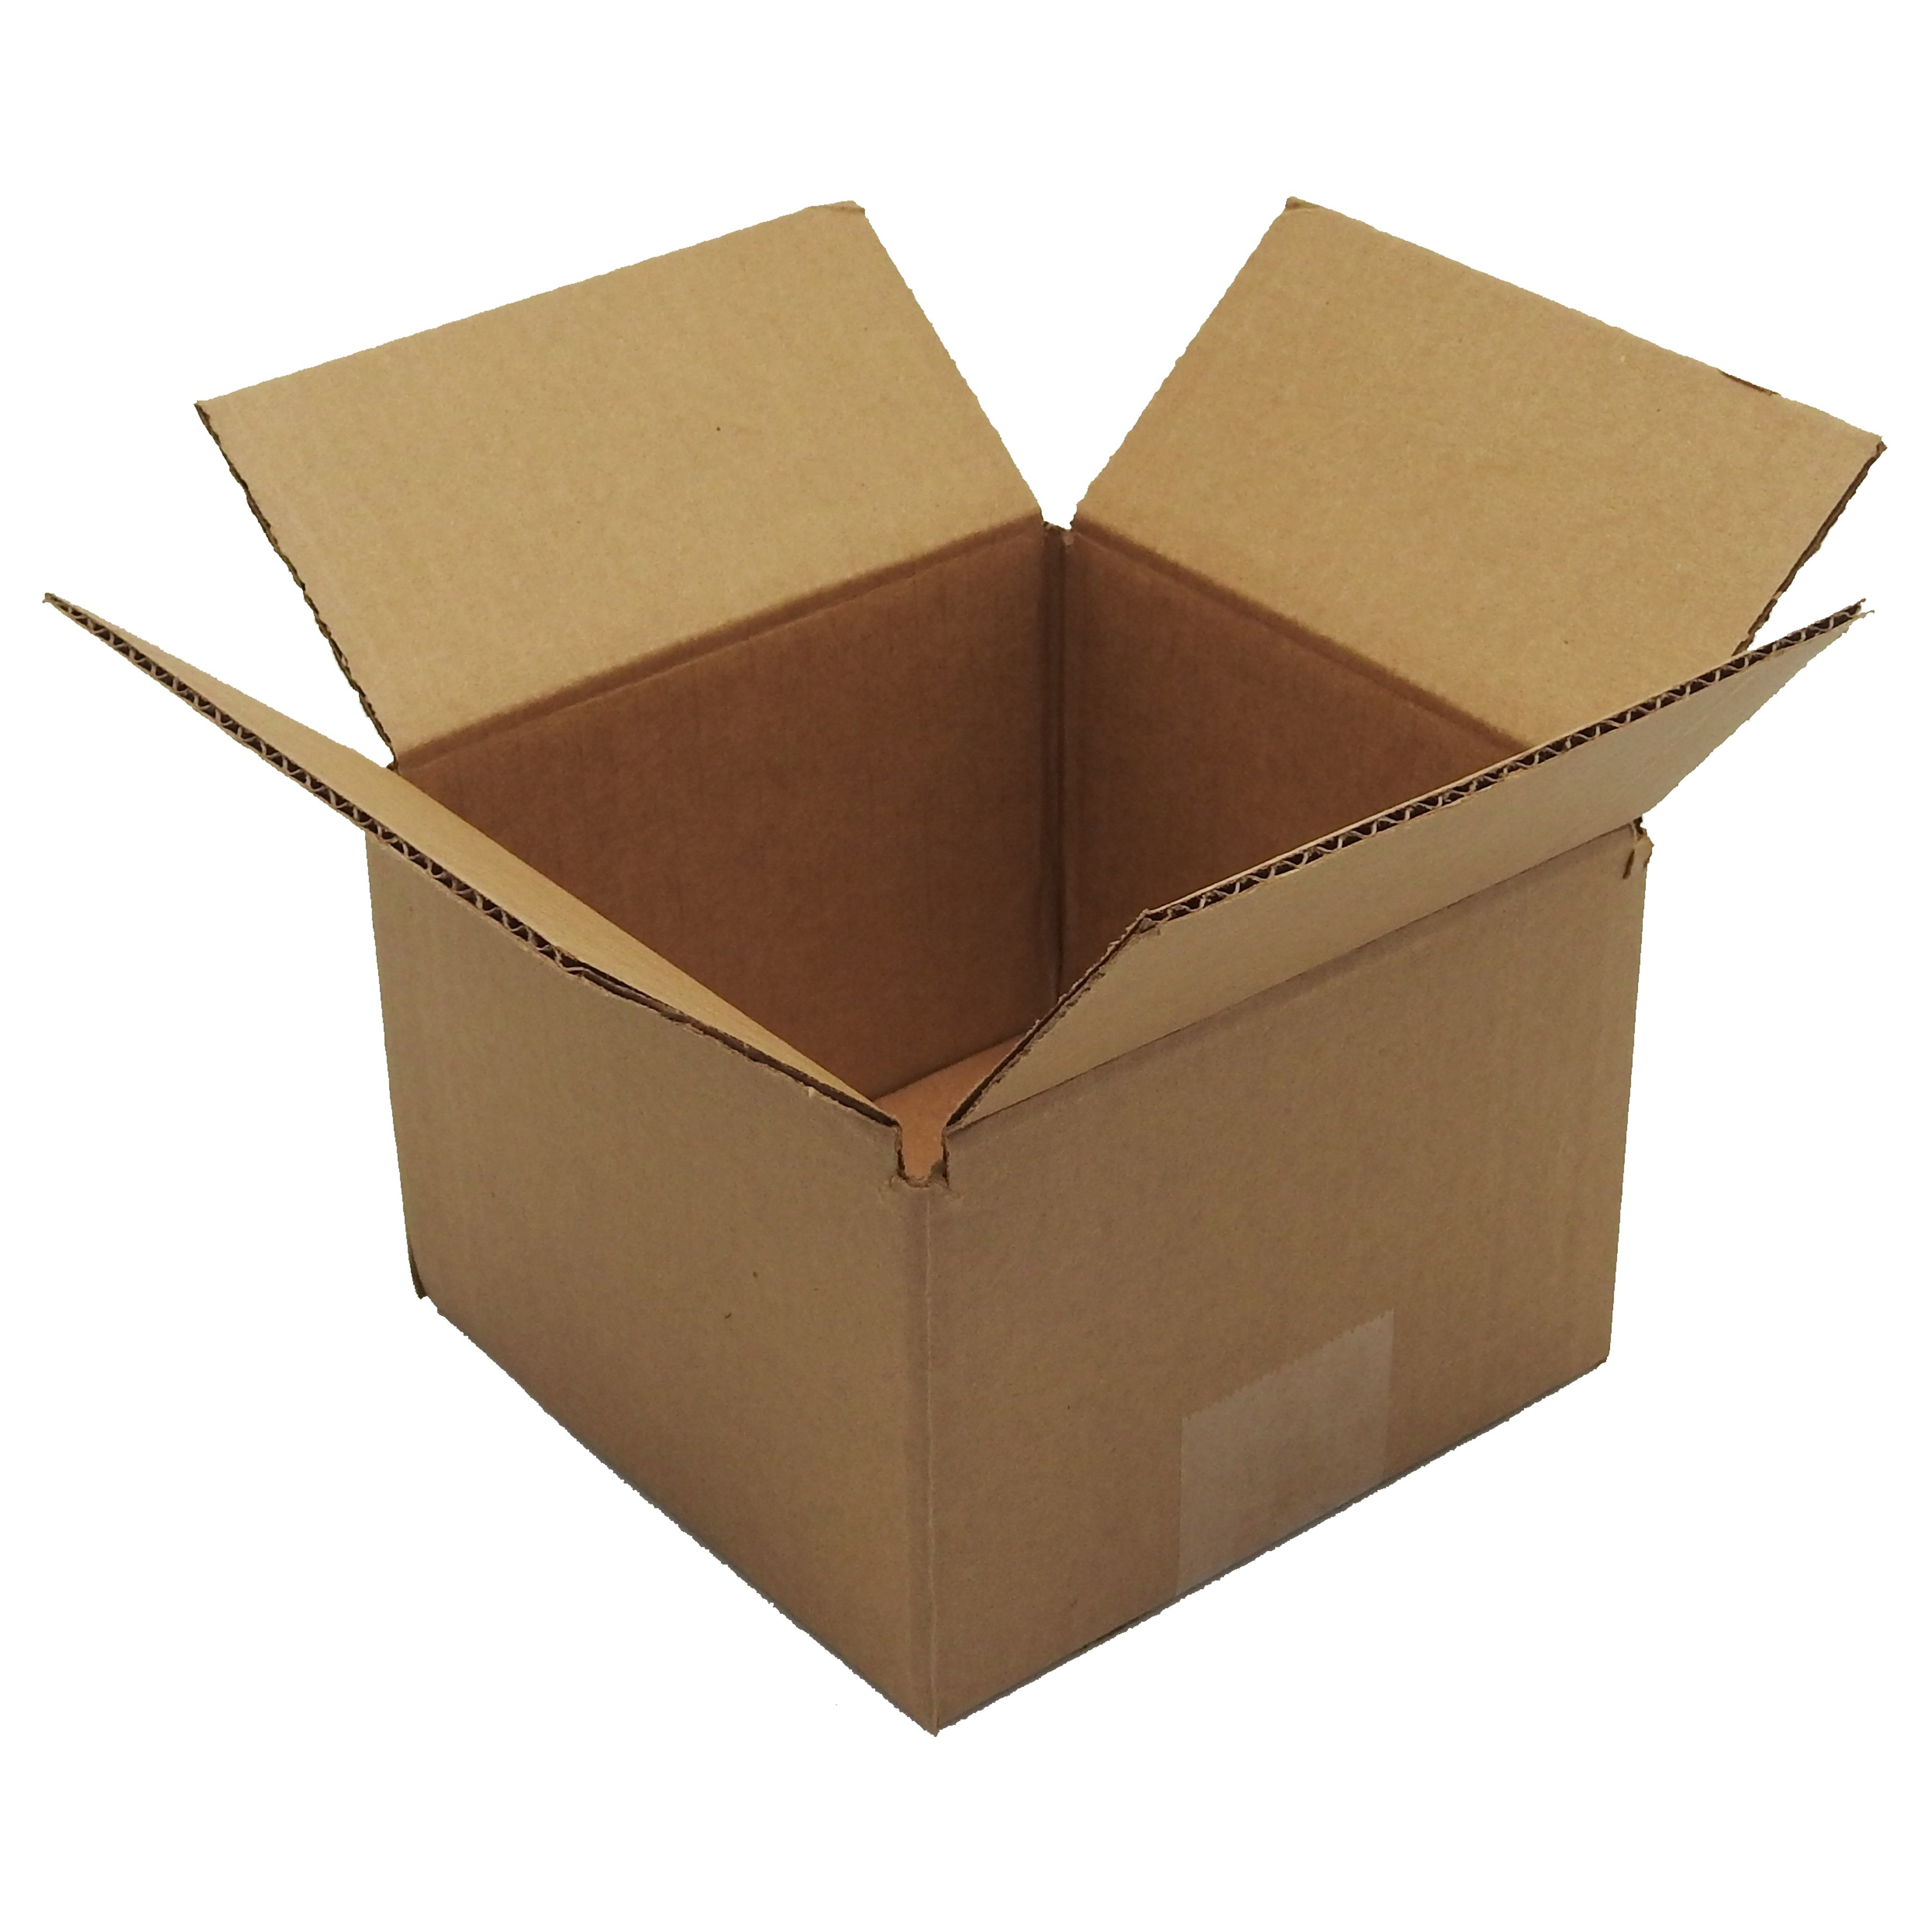 100 6x6x4 Corrugated Cardboard Shipping Mailing Packing Moving Boxes /Box Carton